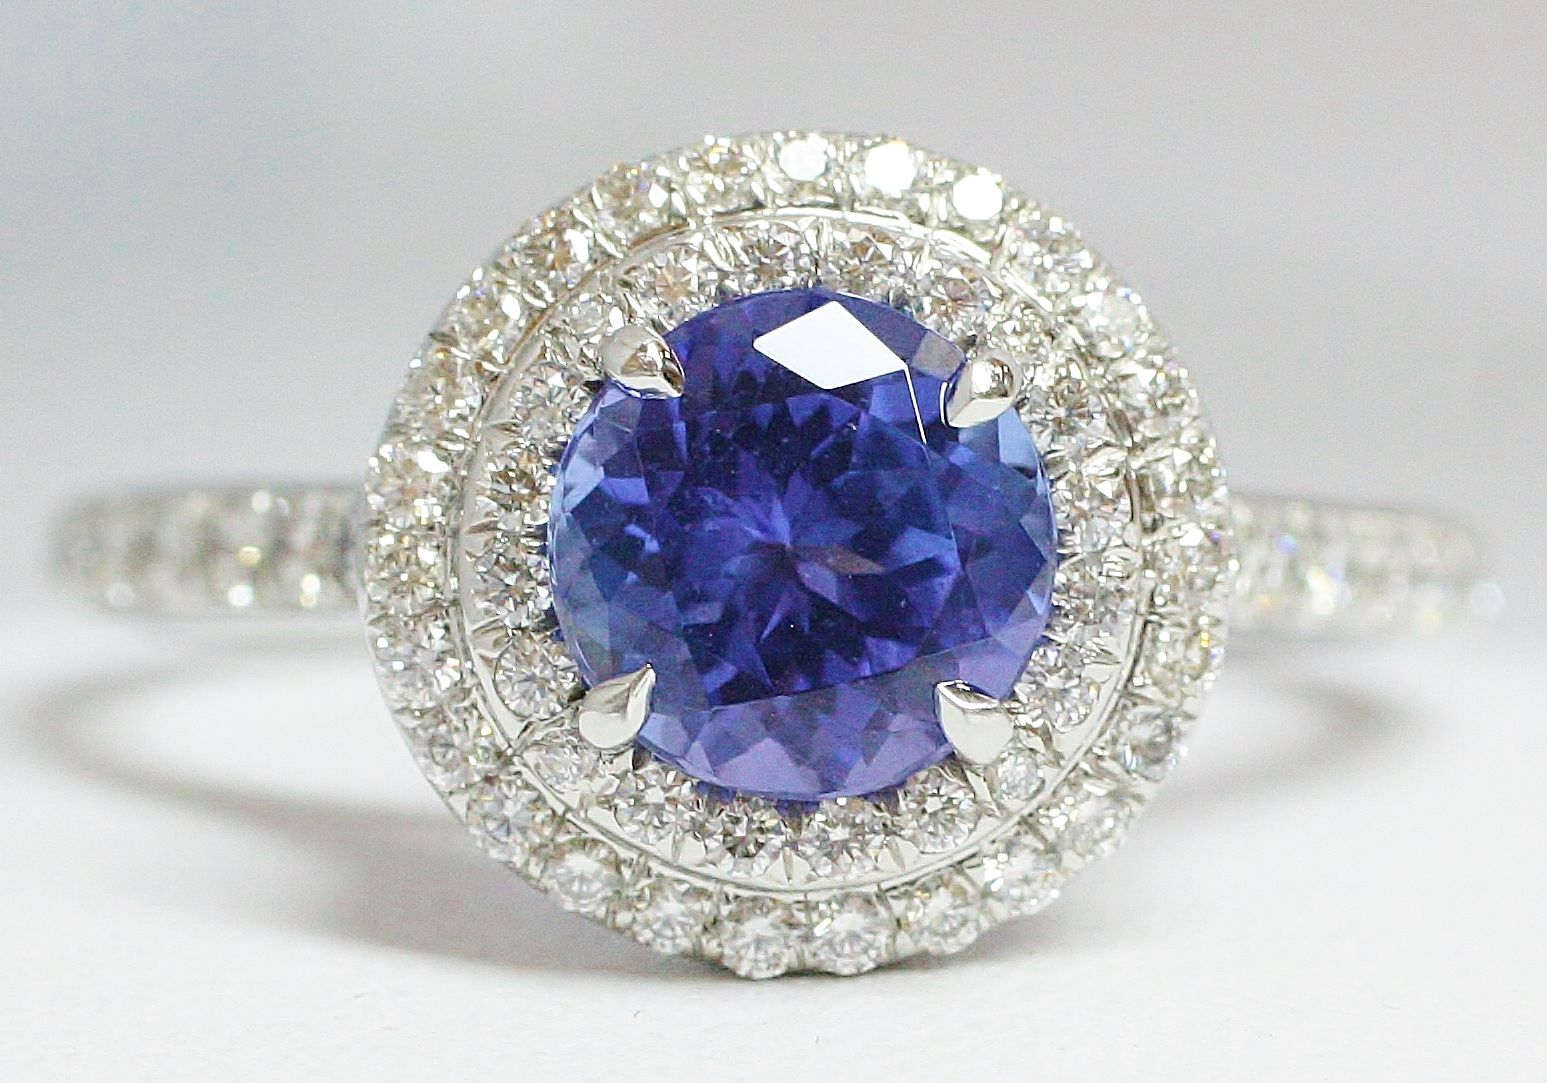 Sell A Tiffany Tanzanite Ring  Seattle, Wa